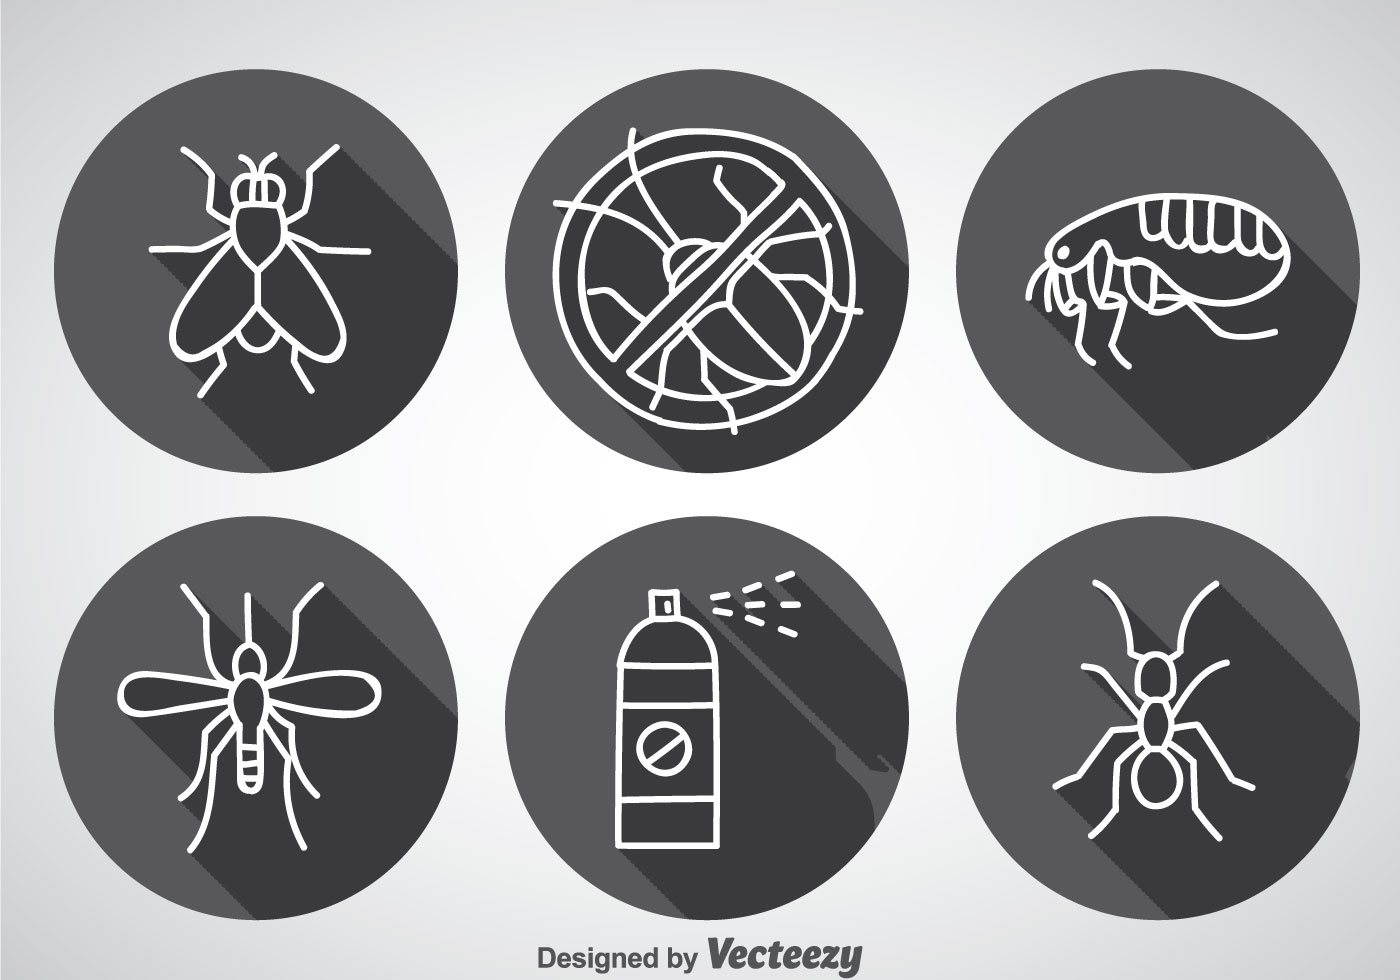 pest-control-long-shadow-icons-vector.jp